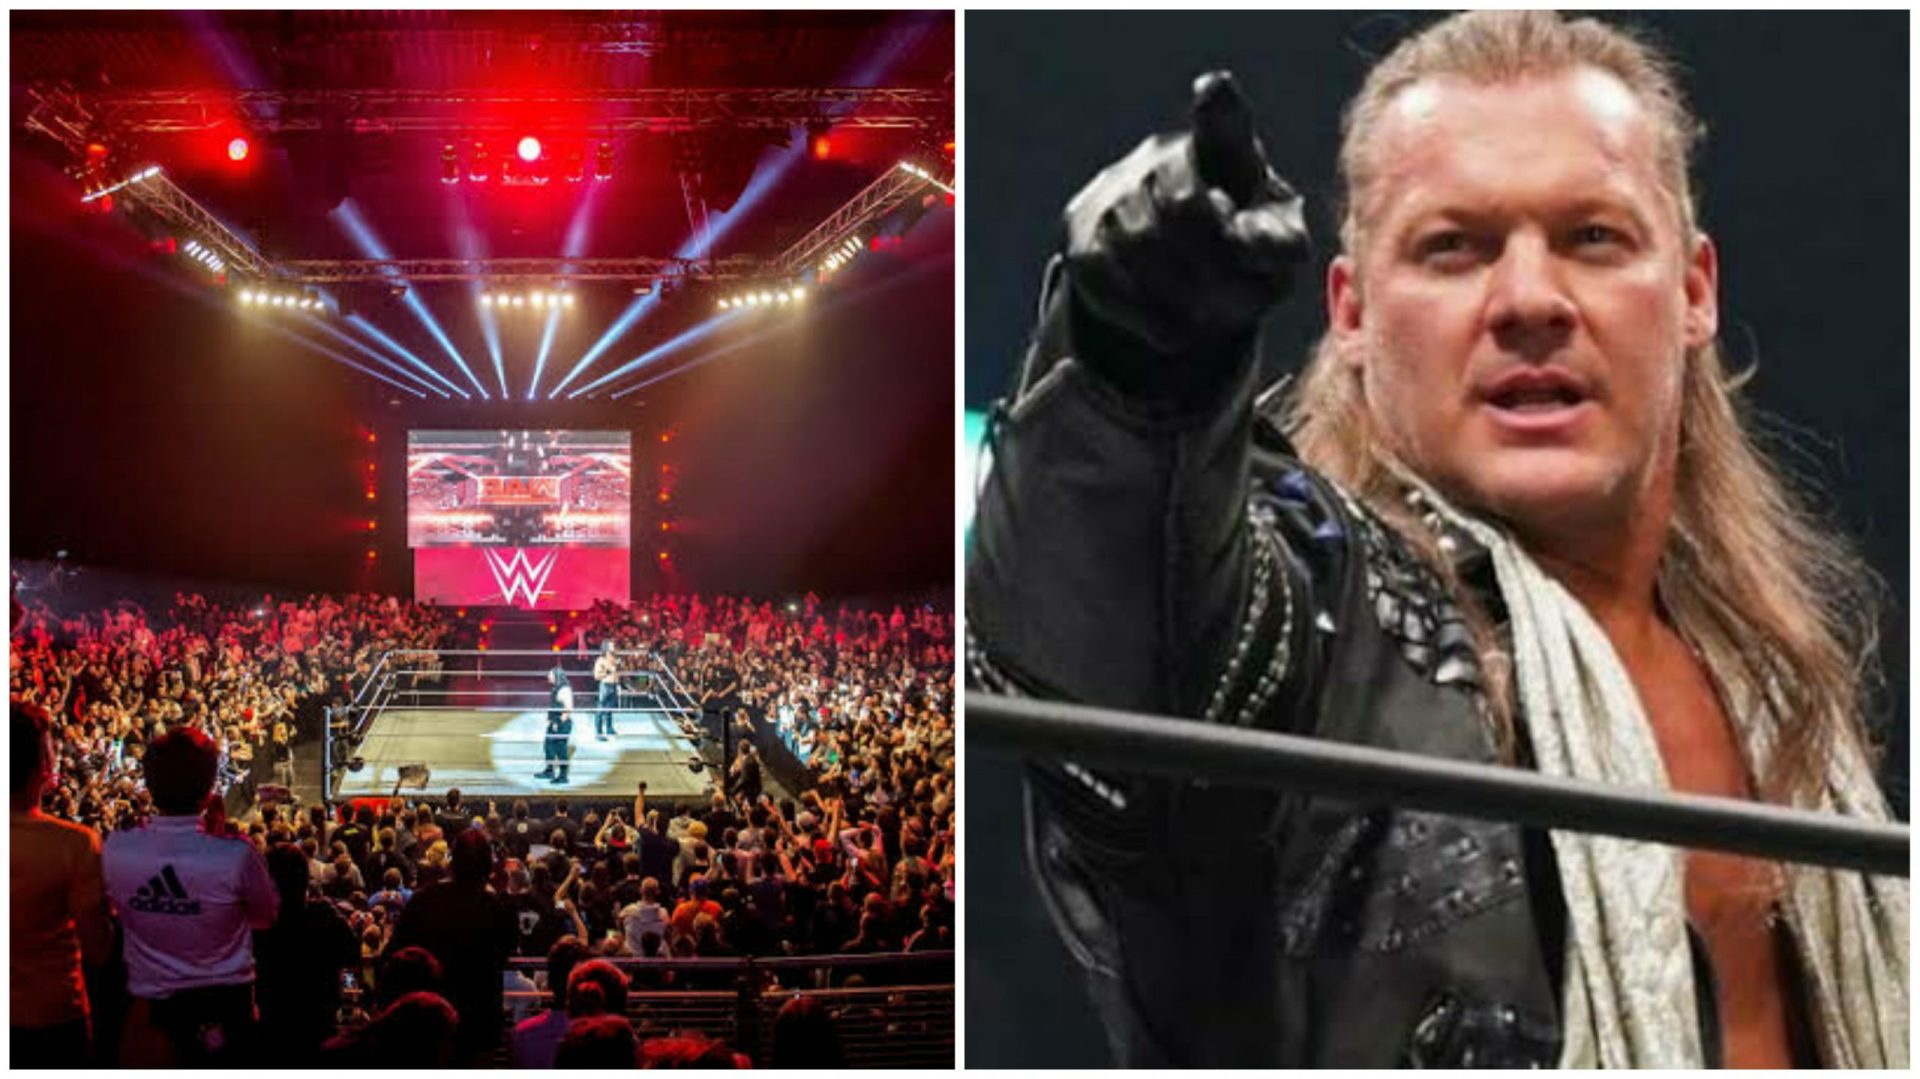 Chris Jericho blames WWE management for not creating new stars - THE SPORTS ROOM